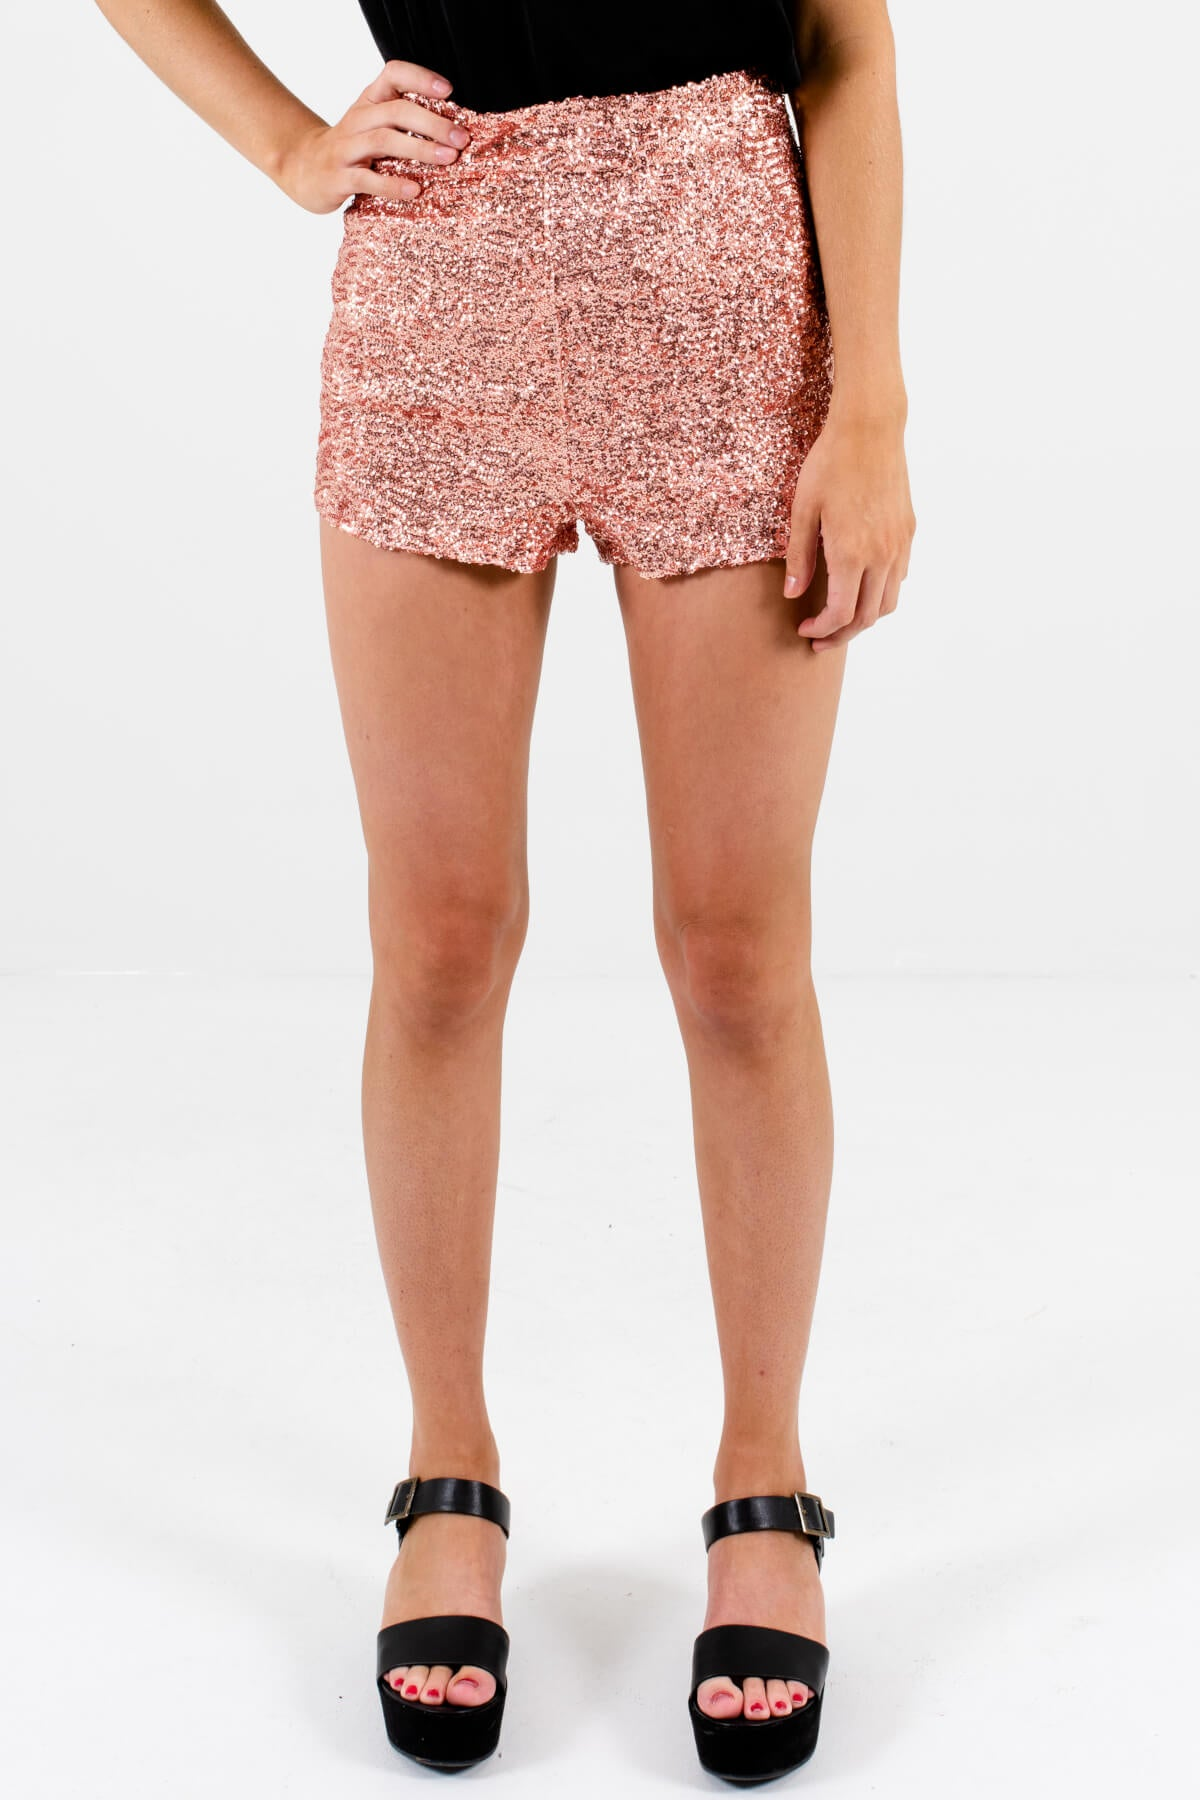 Rose Gold Pink Sequin Sparkly Short Shorts Affordable Online Boutique